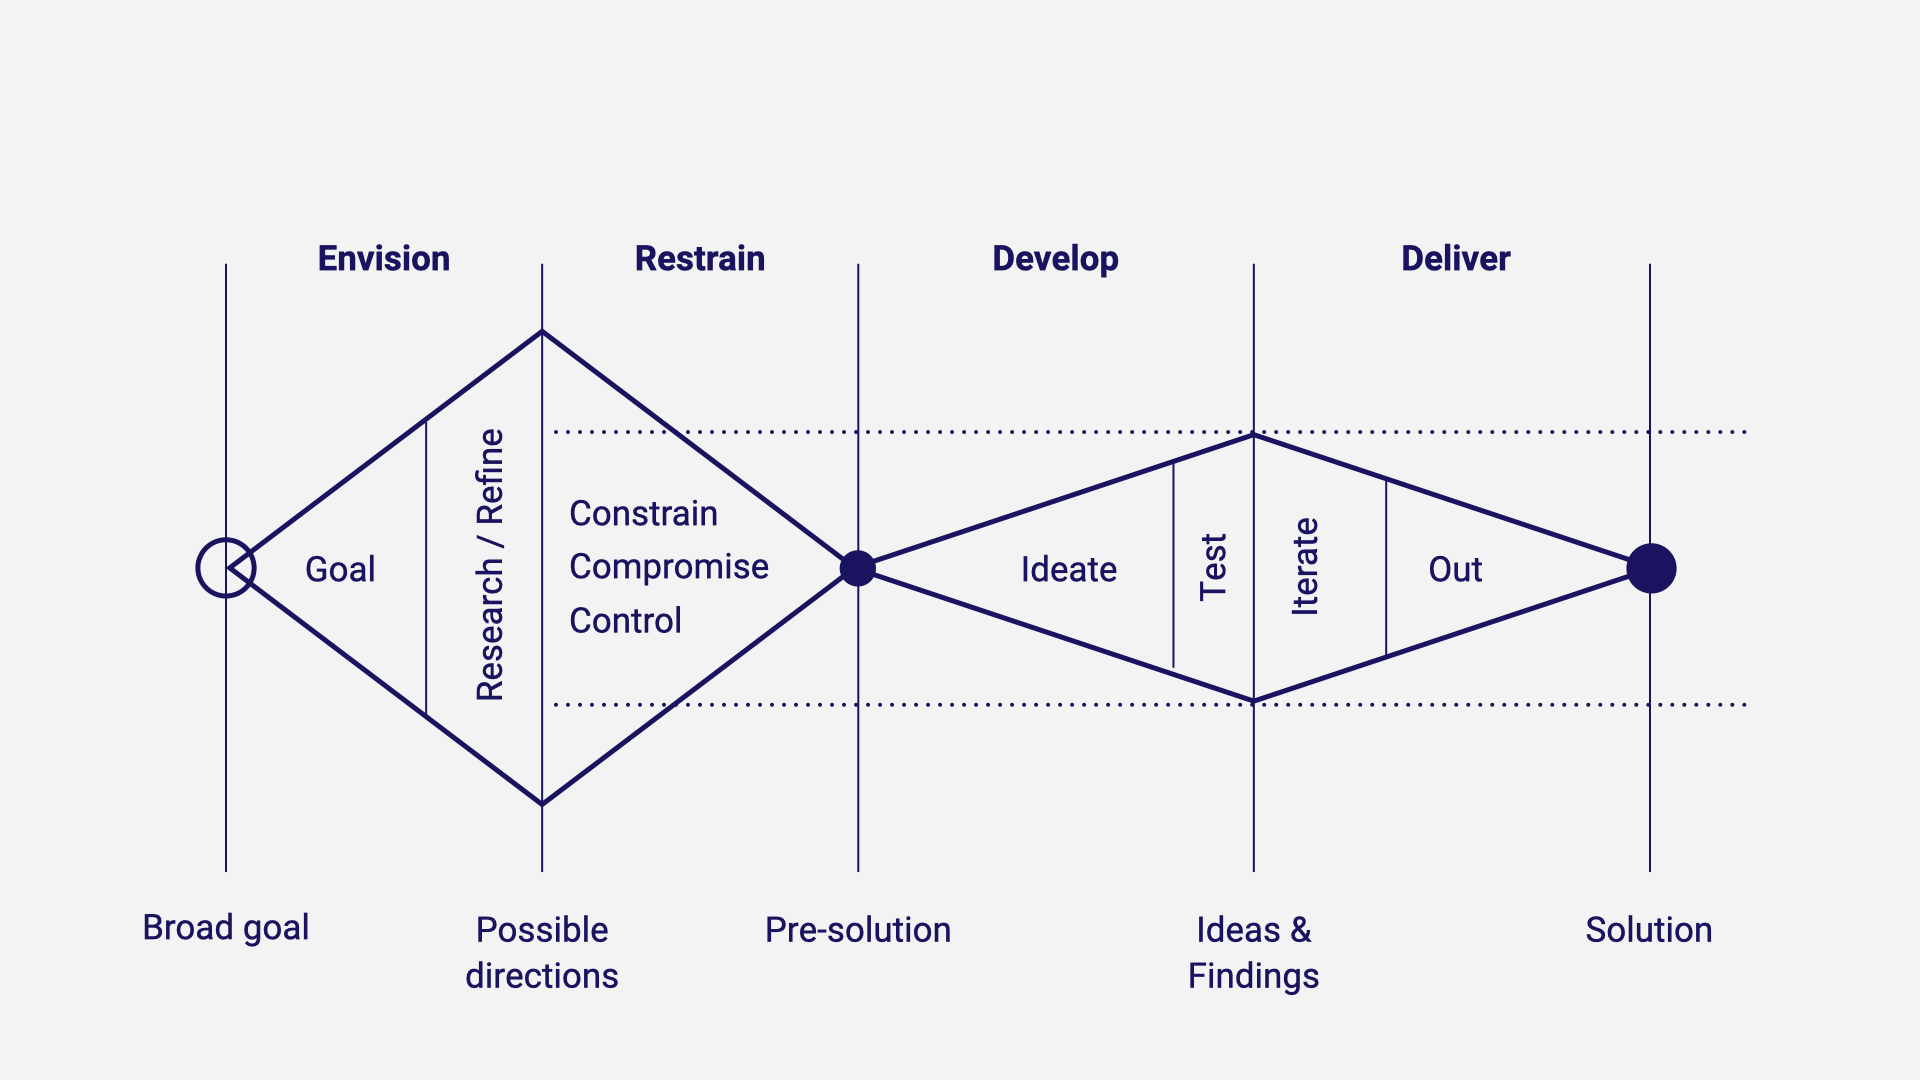 A process diagram with two diamonds describing the journey from a goal to solution.